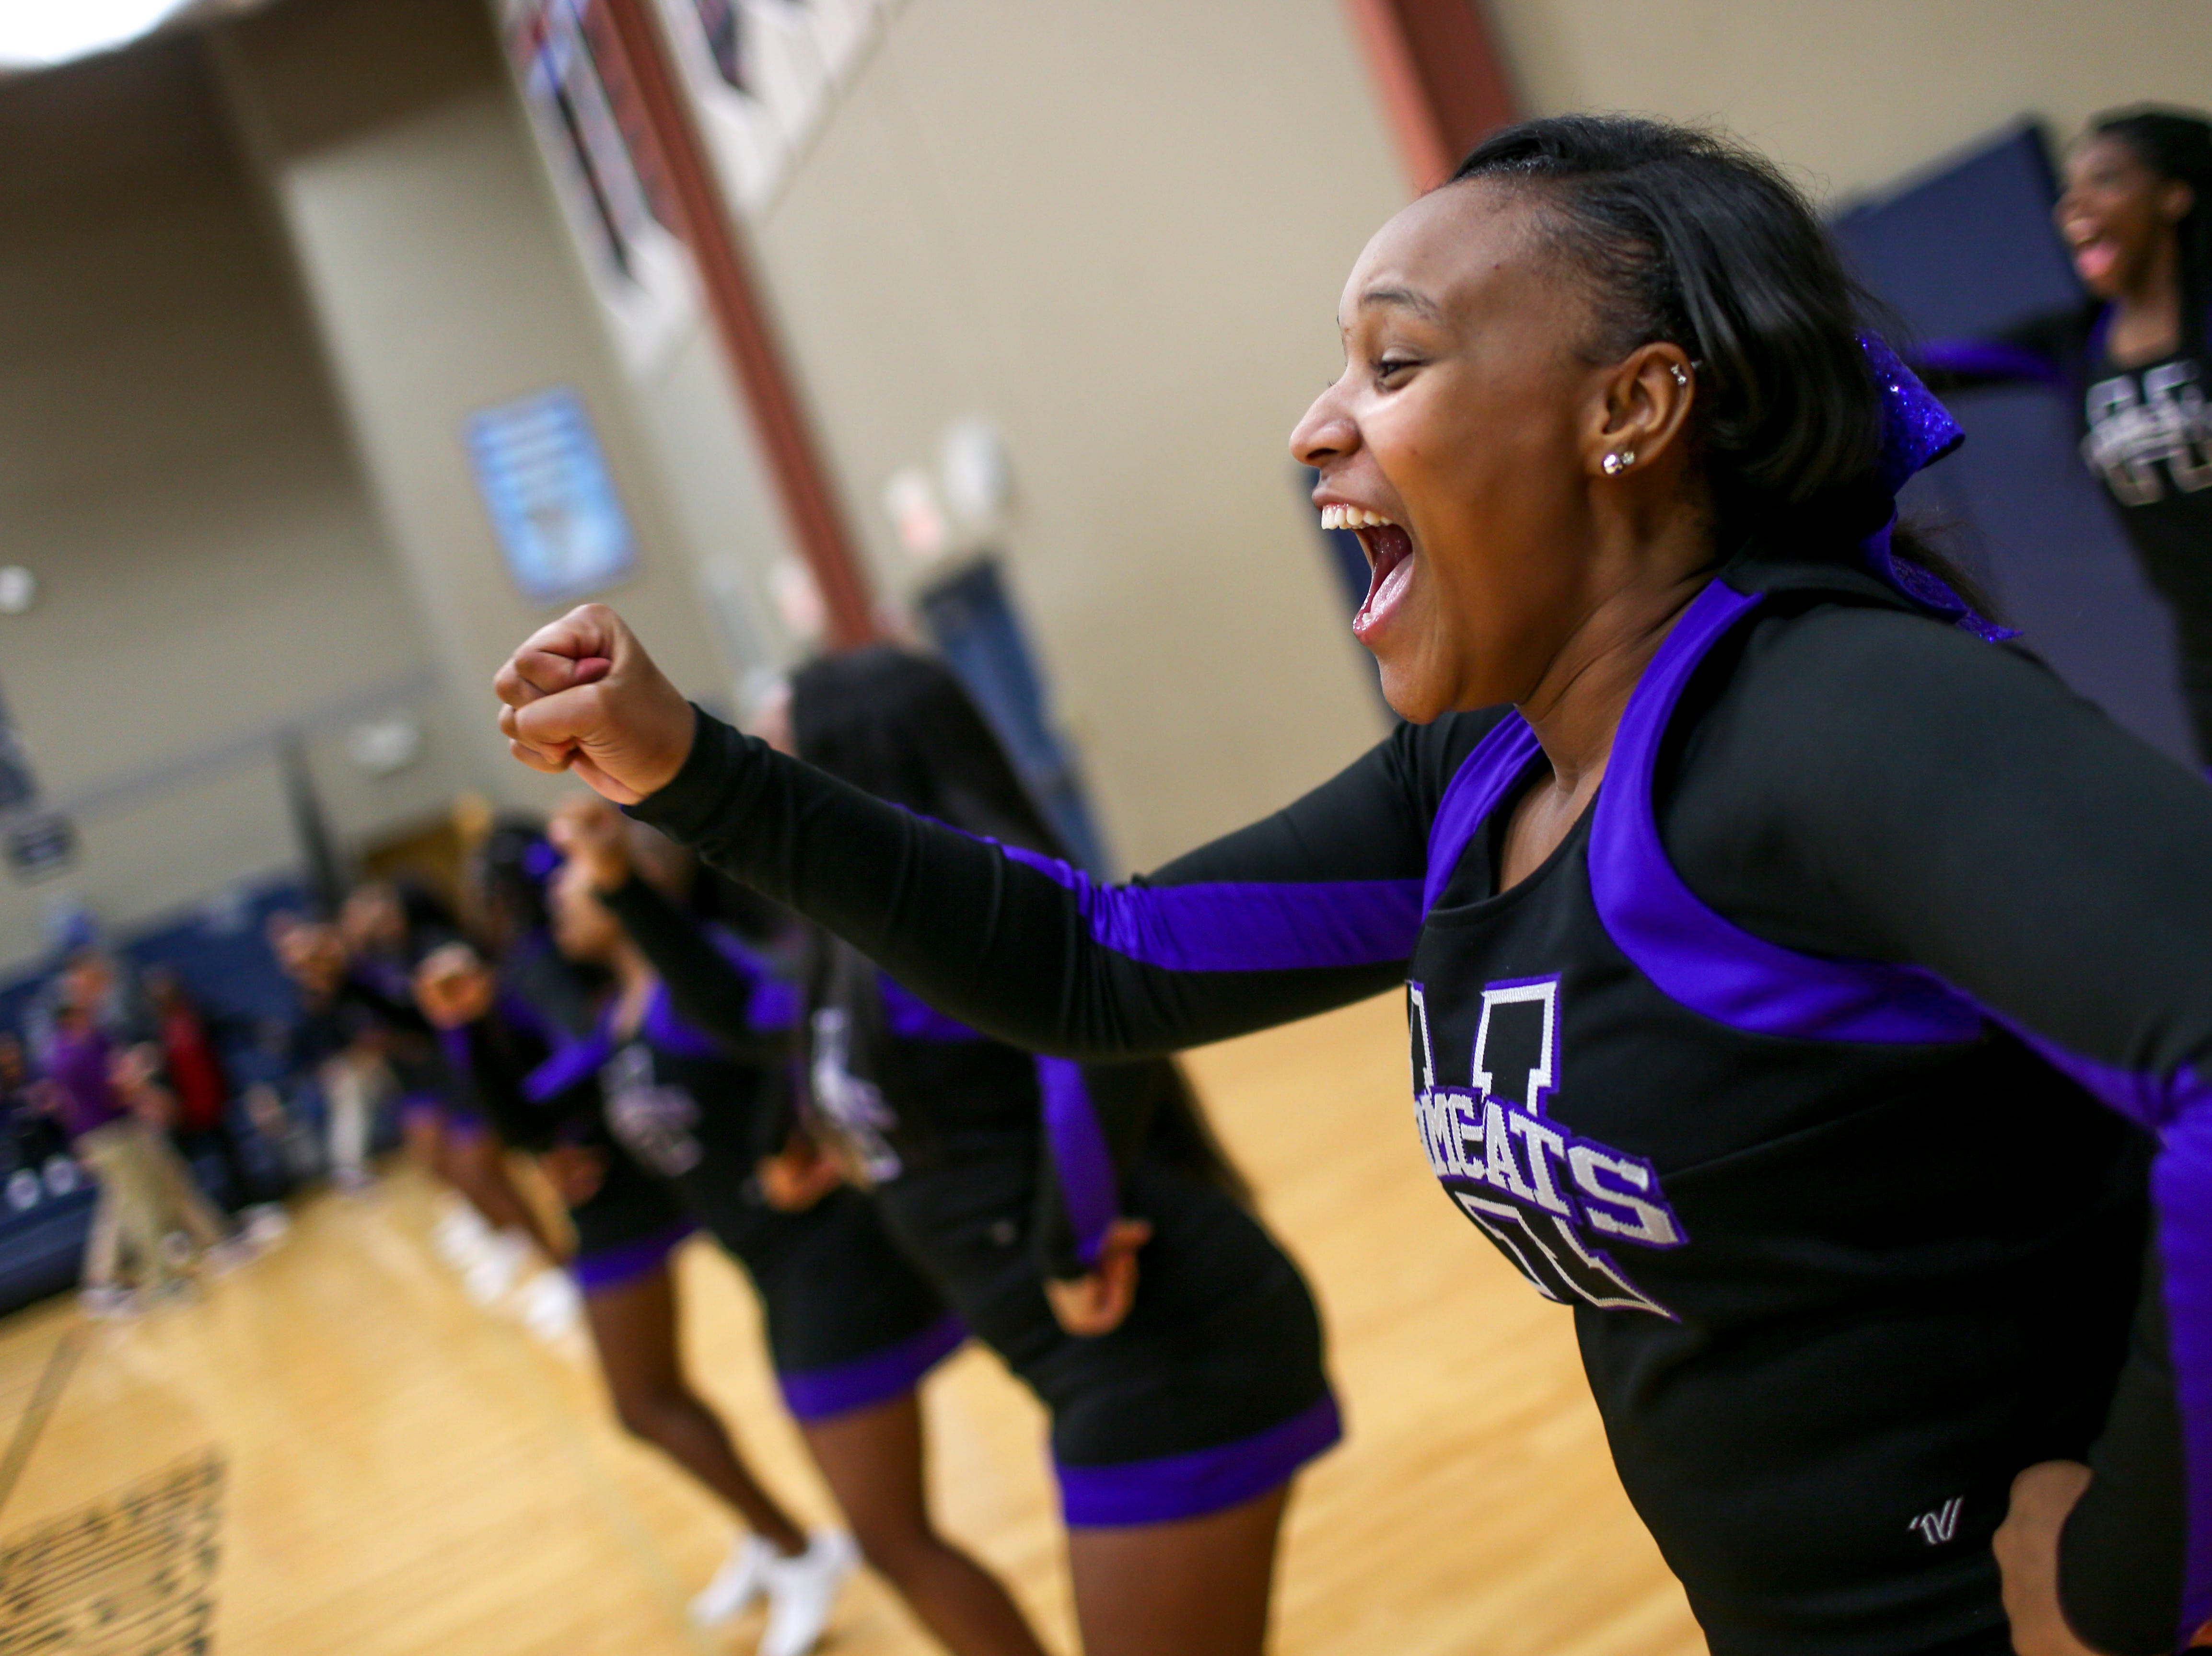 Haywood cheerleaders cheer for their team in a TSSAA boys basketball game between South Gibson and Haywood High Schools at South Gibson High School in Medina, Tenn., on Tuesday, Nov. 27, 2018.